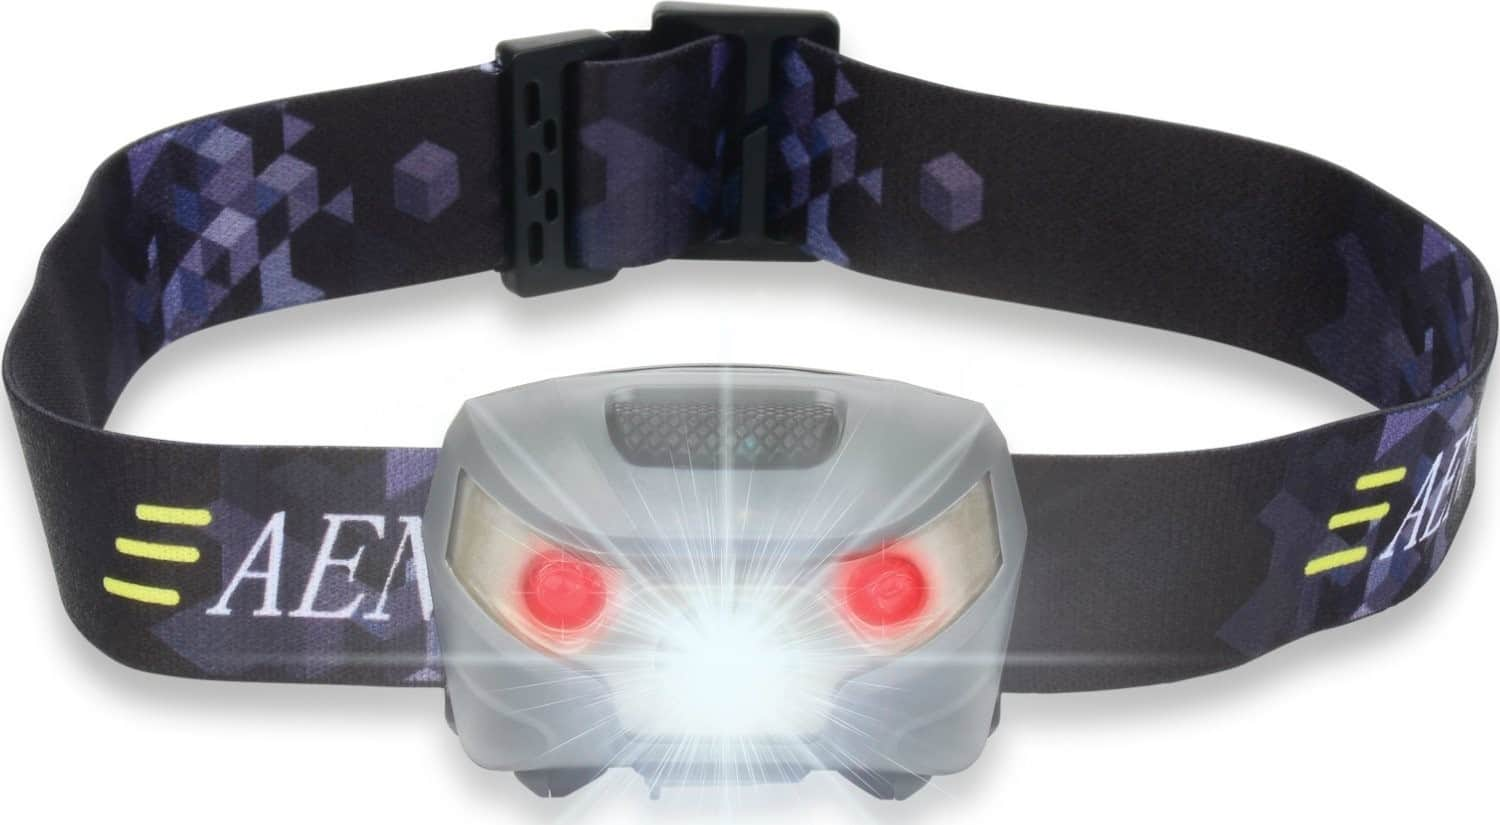 USB Rechargeable LED Head Torch